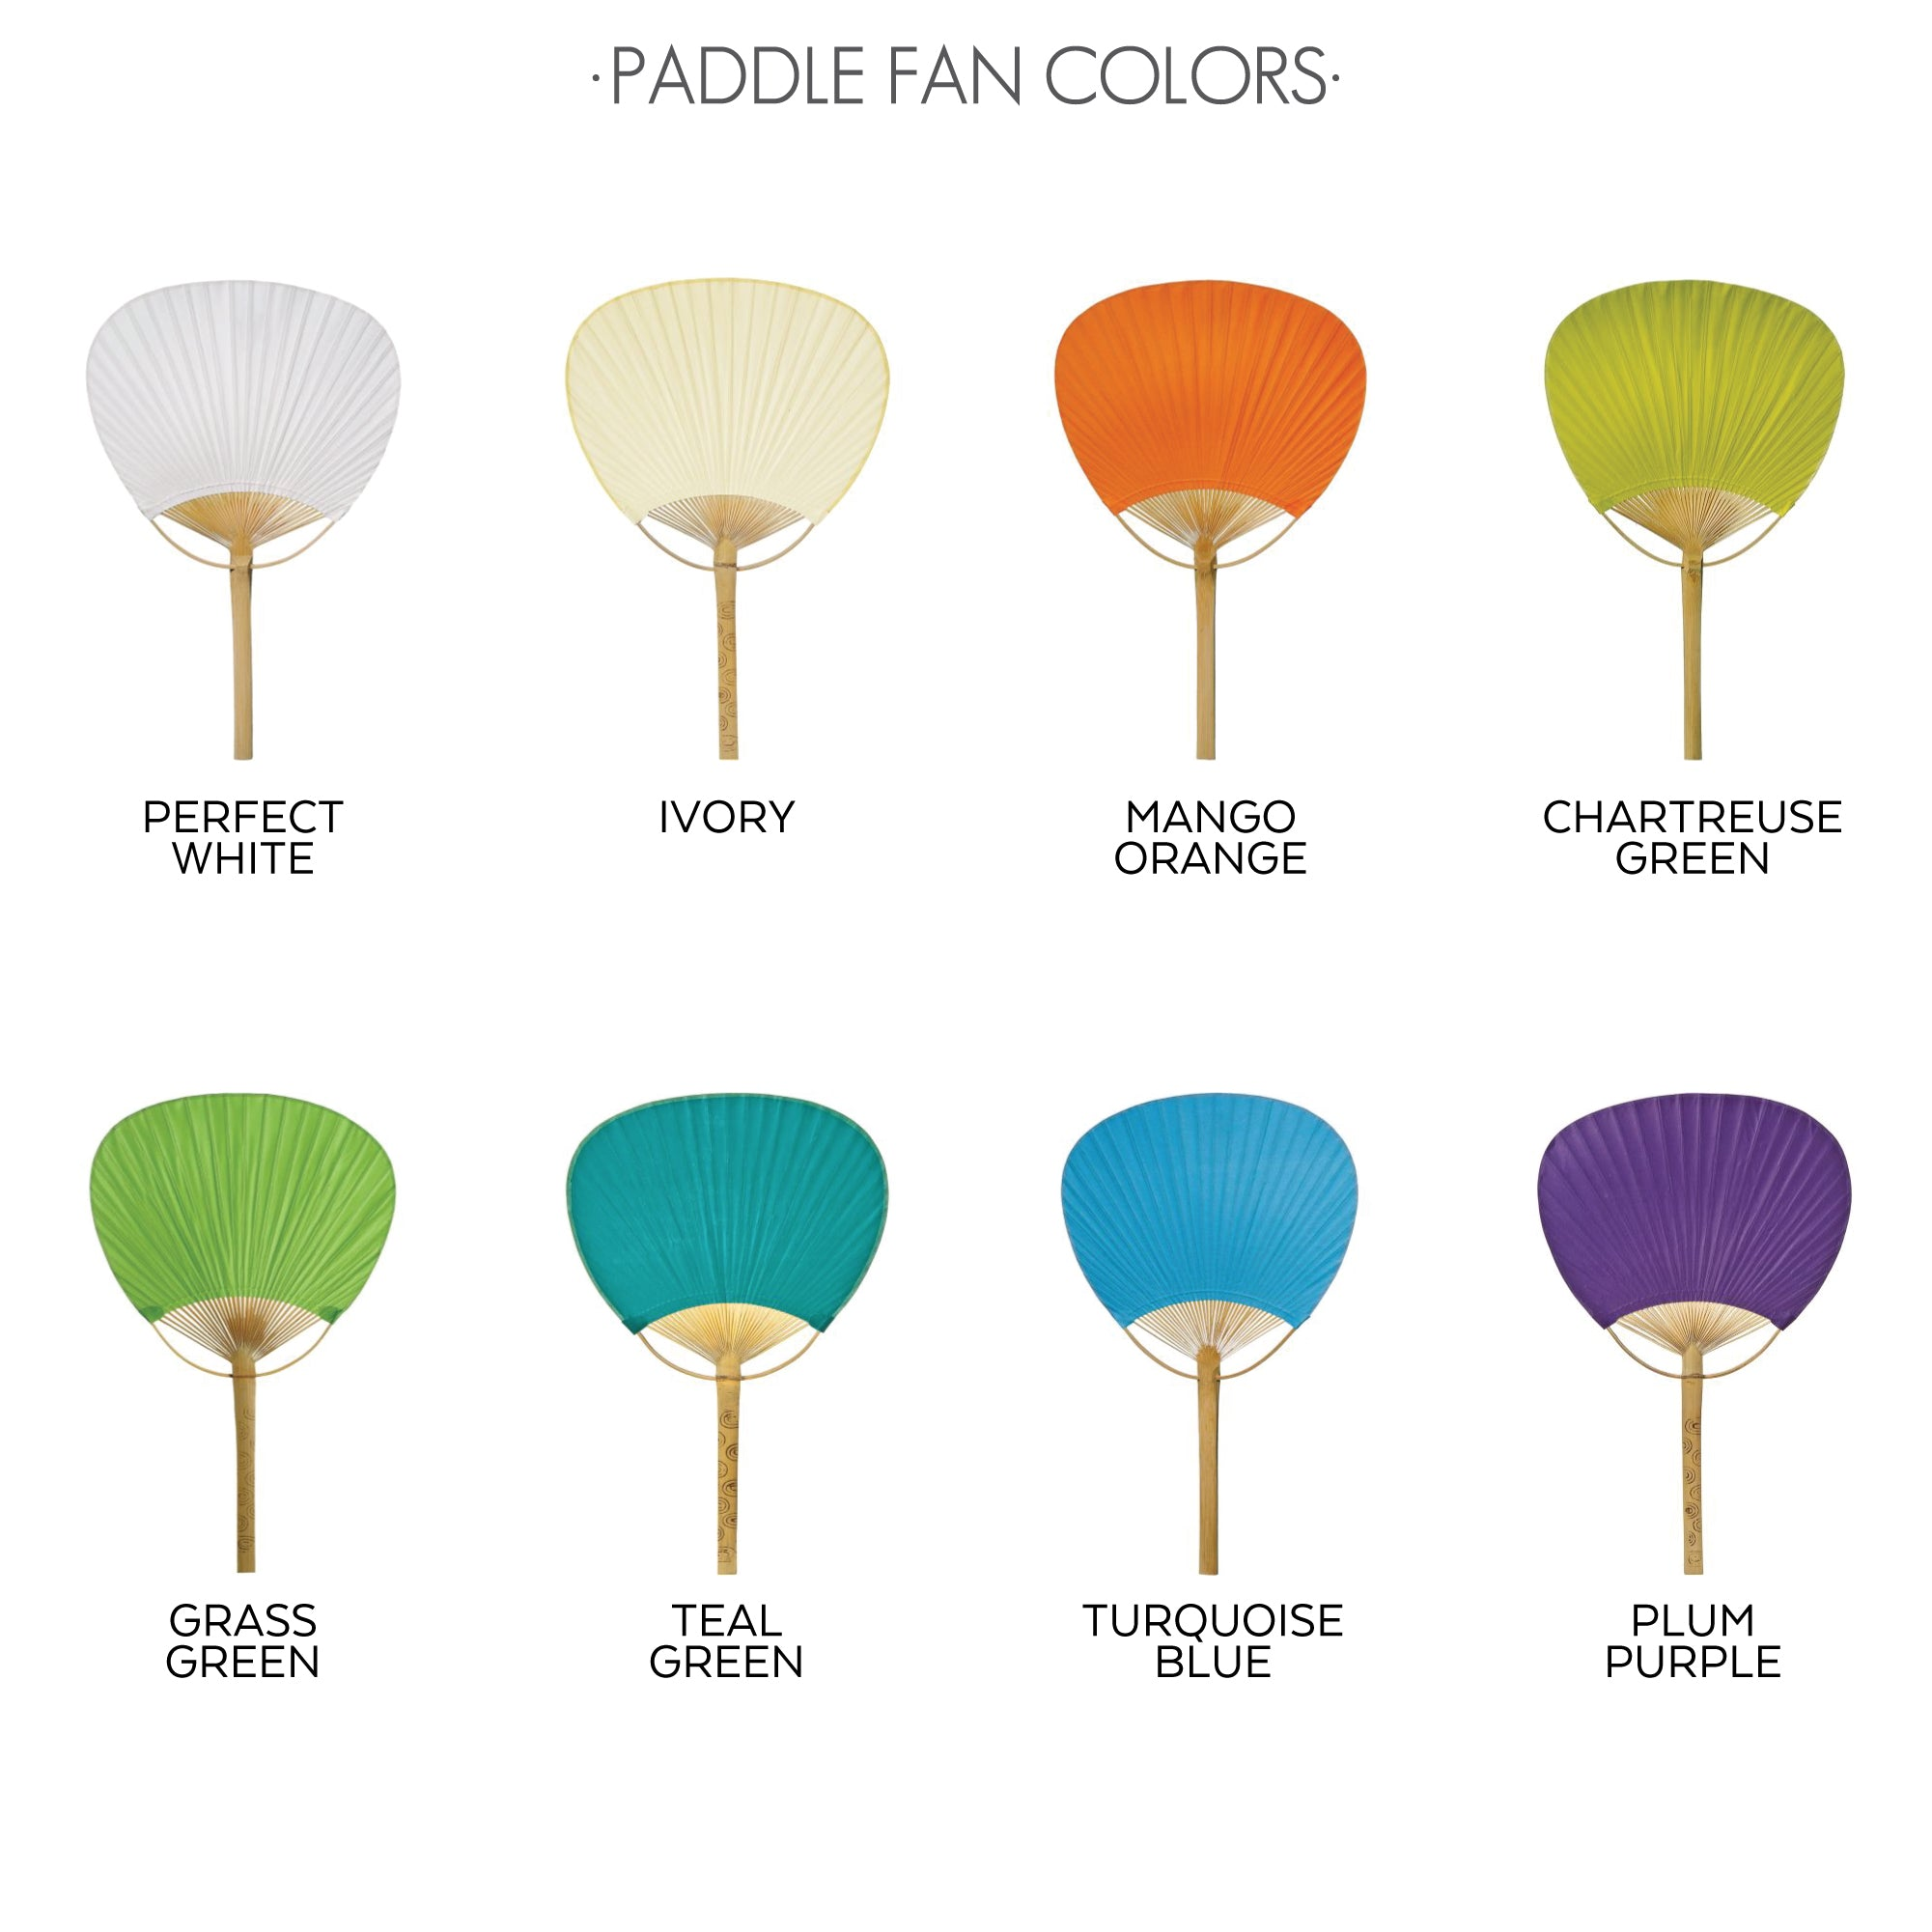 PADDLE FAN COLORS